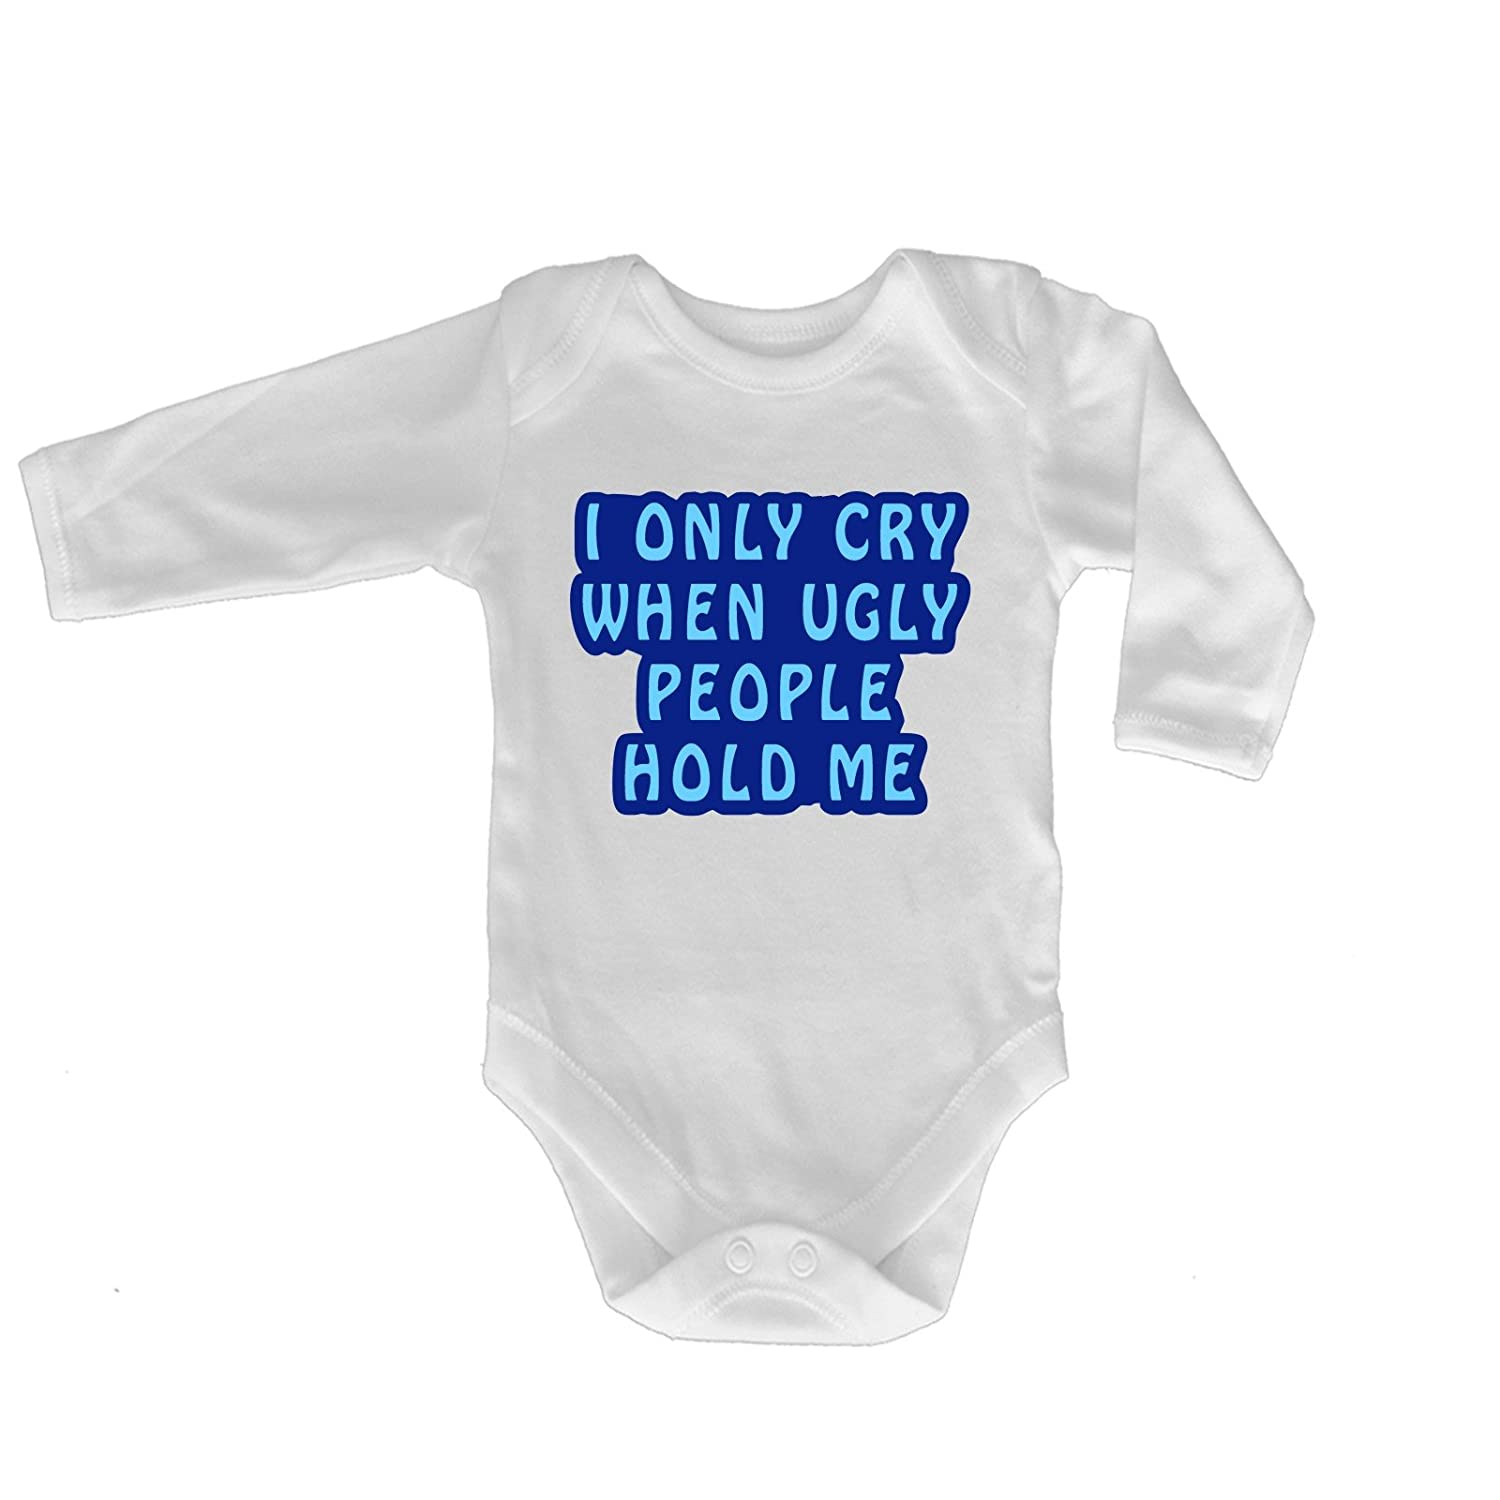 Novelty Funny Top I ONLY CRY When Ugly People Hold ME Babygrow s